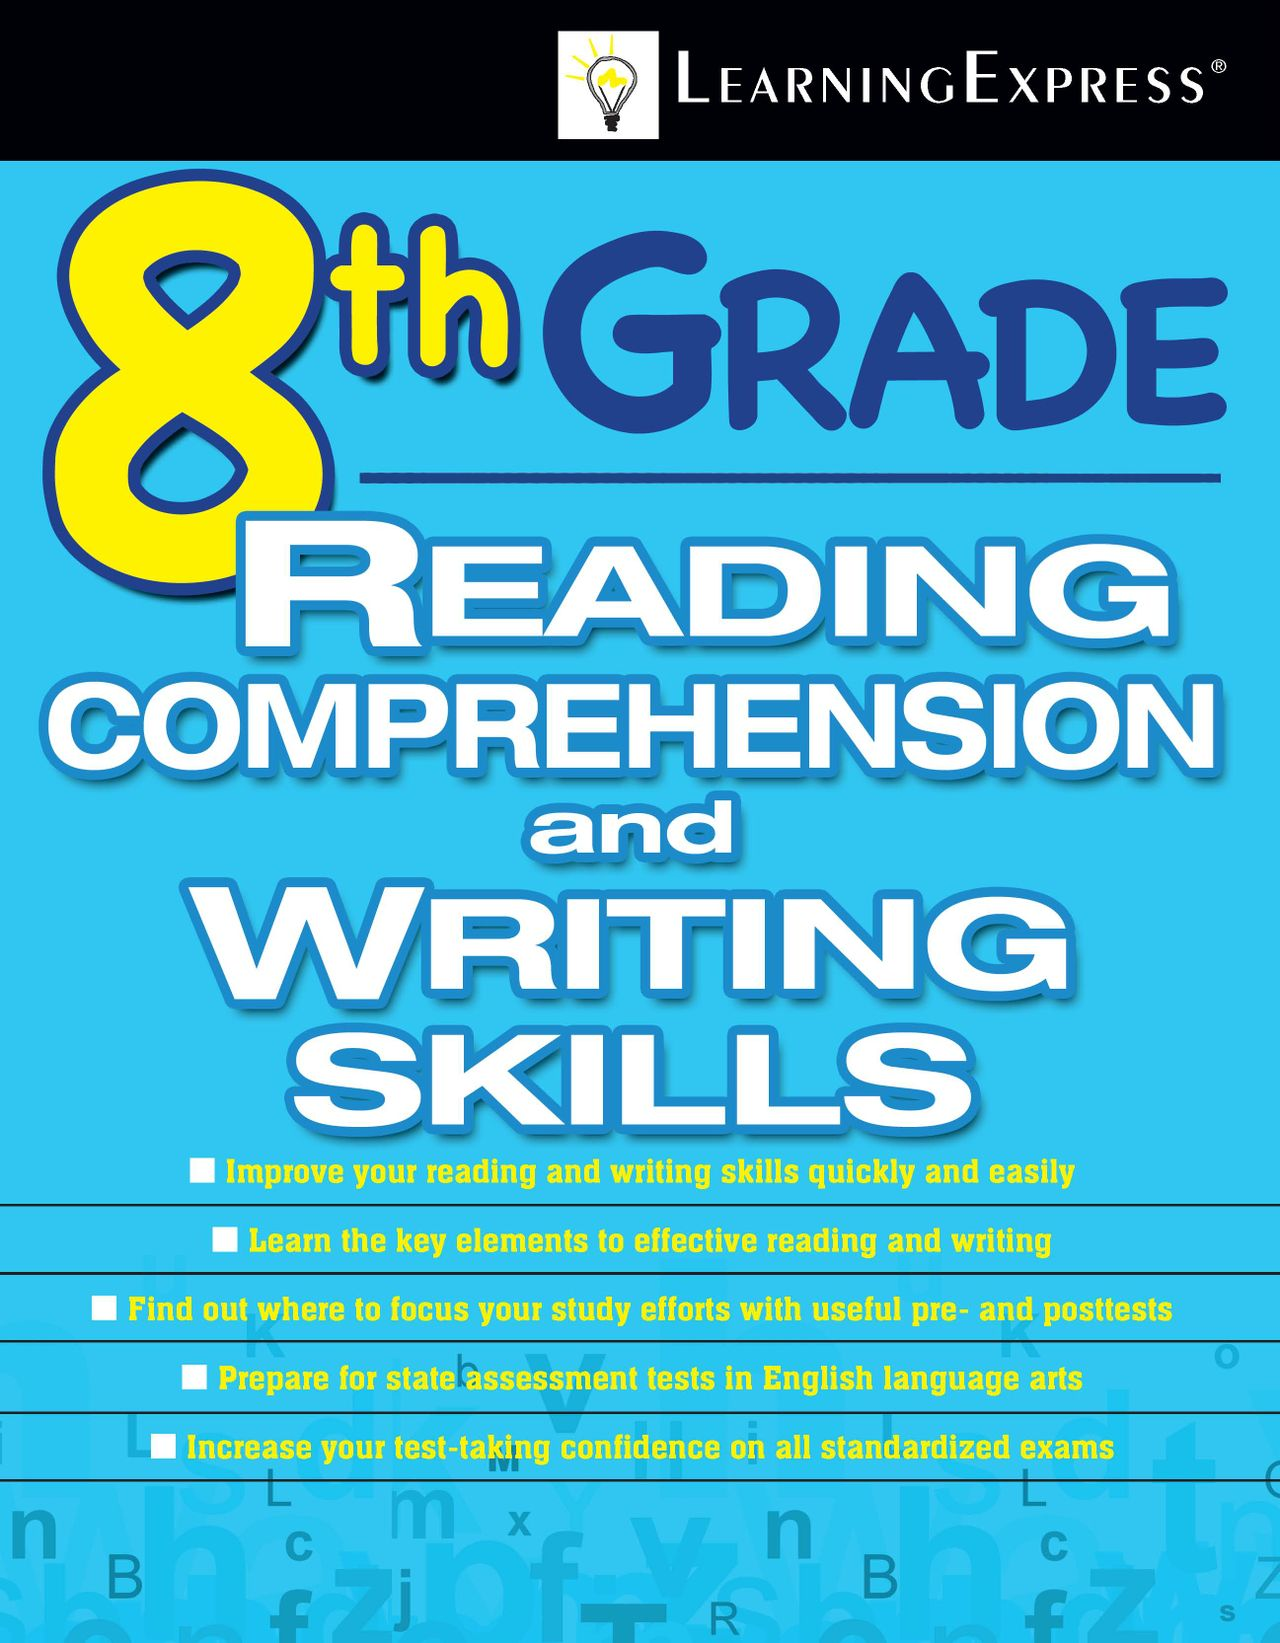 8th Grade Reading Comprehension And Writing Skills